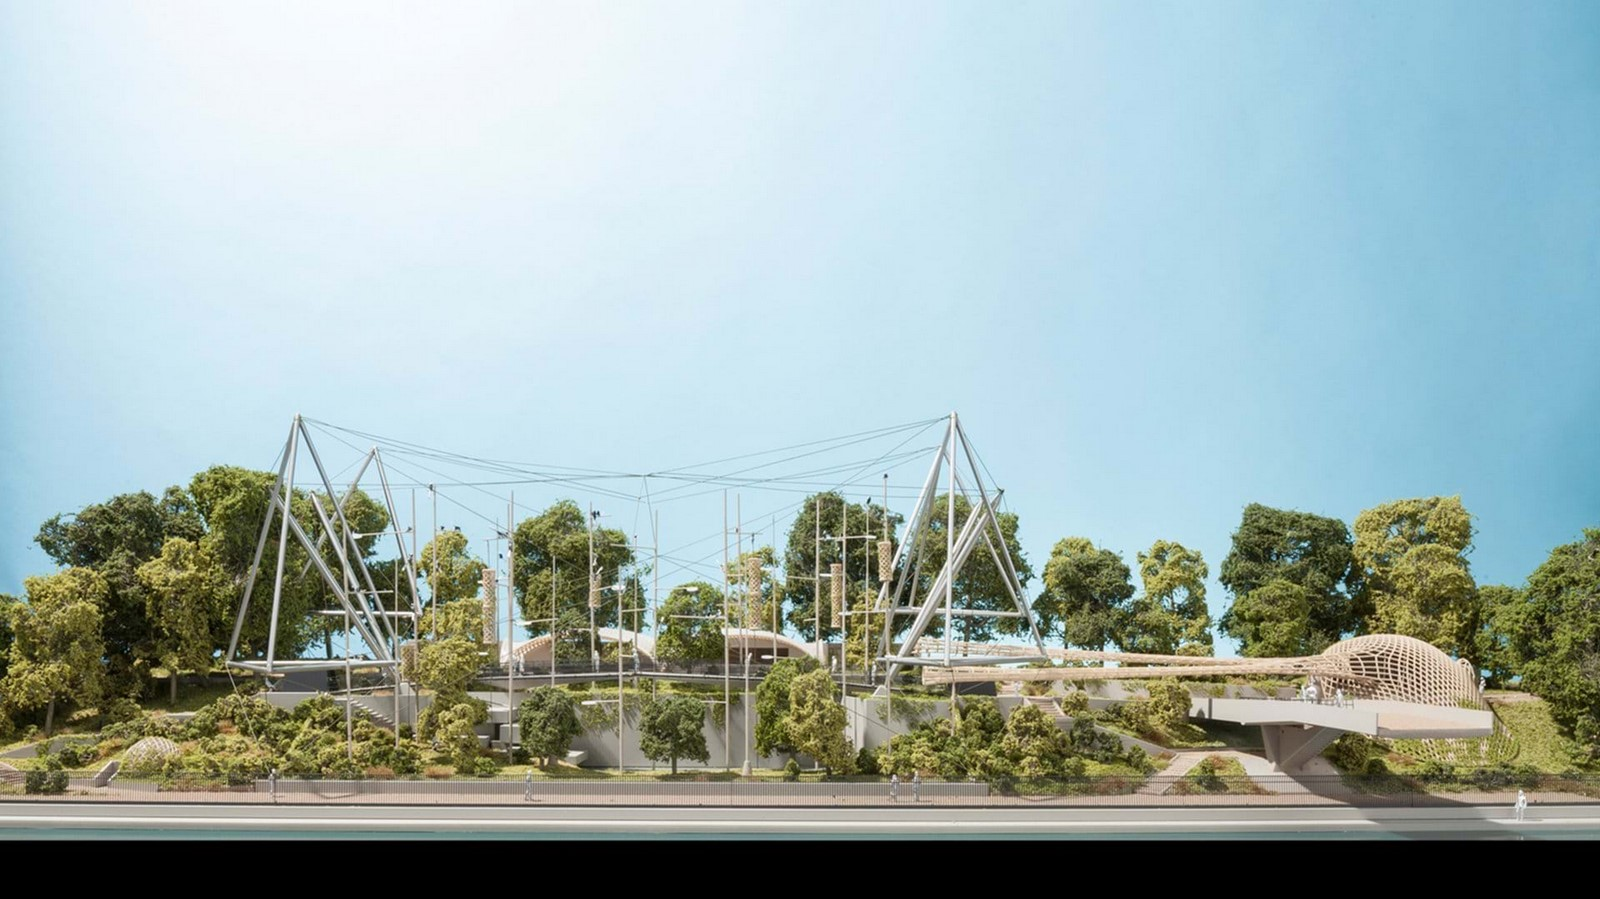 10 Upcoming sustainable projects by famous architects - Sheet5